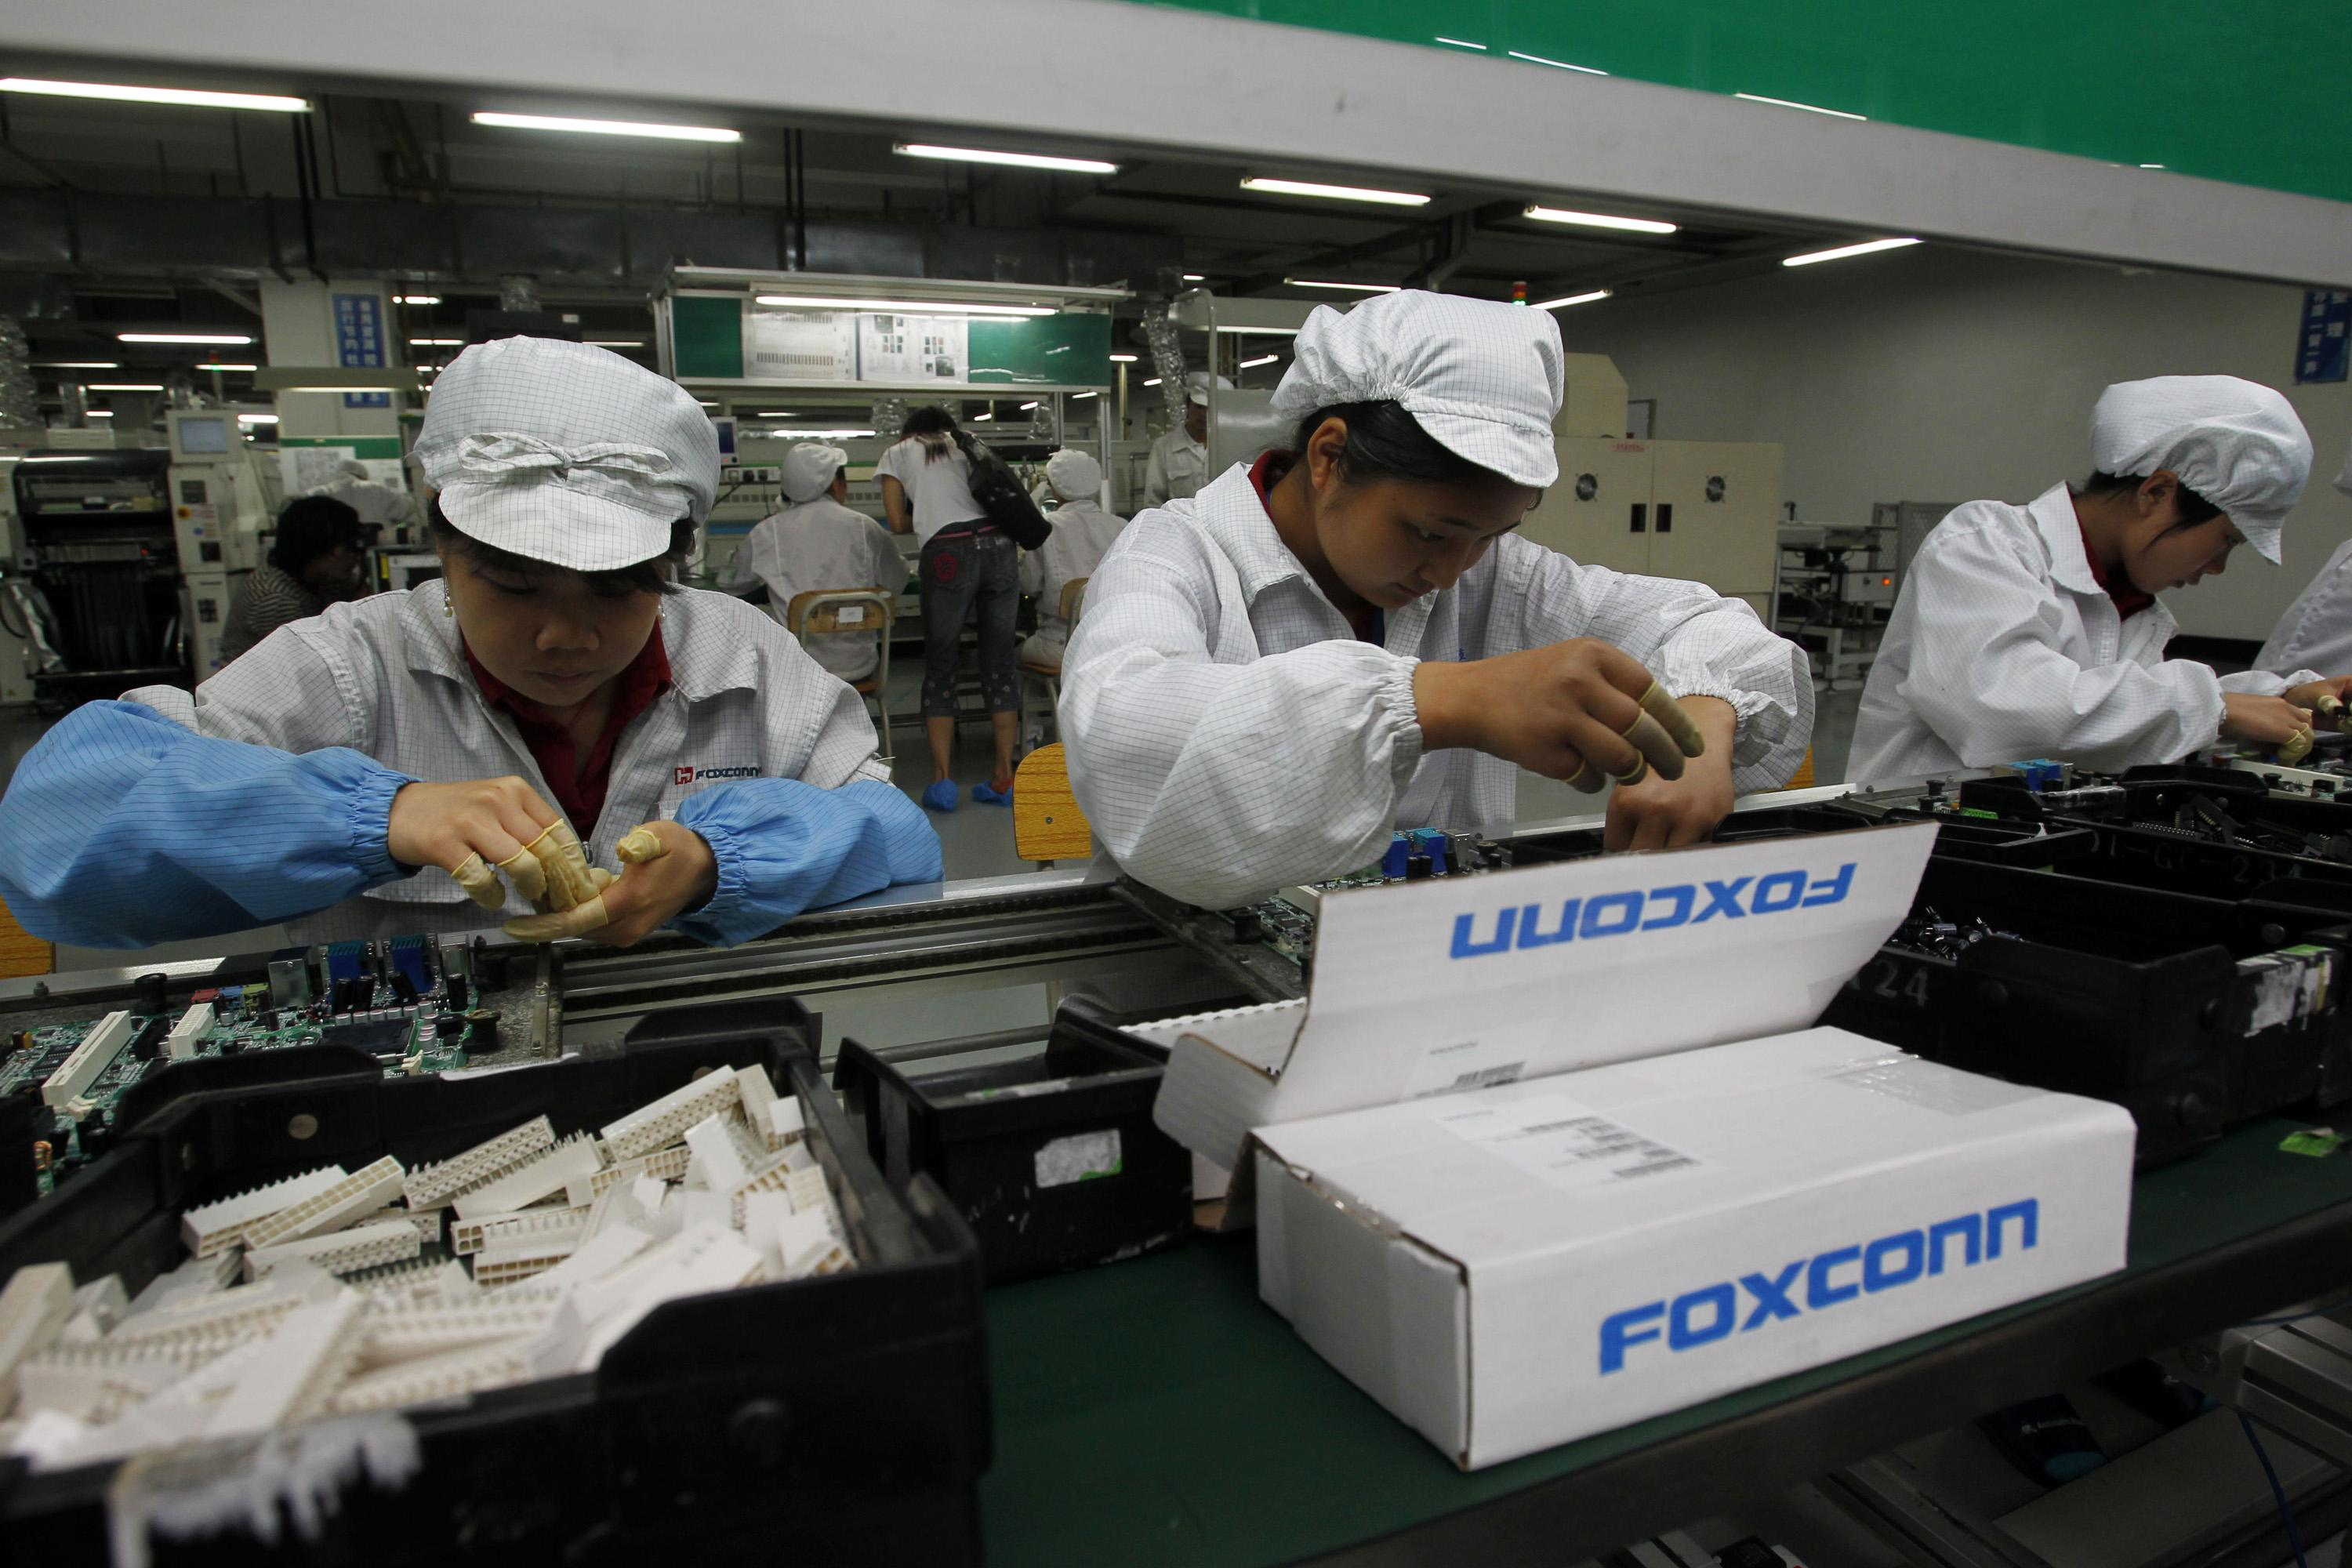 FILE - In this May 26, 2010 file photo, staff members work on the production line at the Foxconn complex in the southern Chinese city of Shenzhen, southern China. A pledge reported Thursday, March 29, 2012 by the manufacturer of Apple's iPhones and iPads to limit work hours at its factories in China could force other global corporations to hike pay for Chinese workers who produce the world's consumer electronics, toys and other goods. Foxconn Technology's promise comes as Beijing is pushing foreign companies to share more of their revenues with Chinese employees. (AP Photo/Kin Cheung, File)